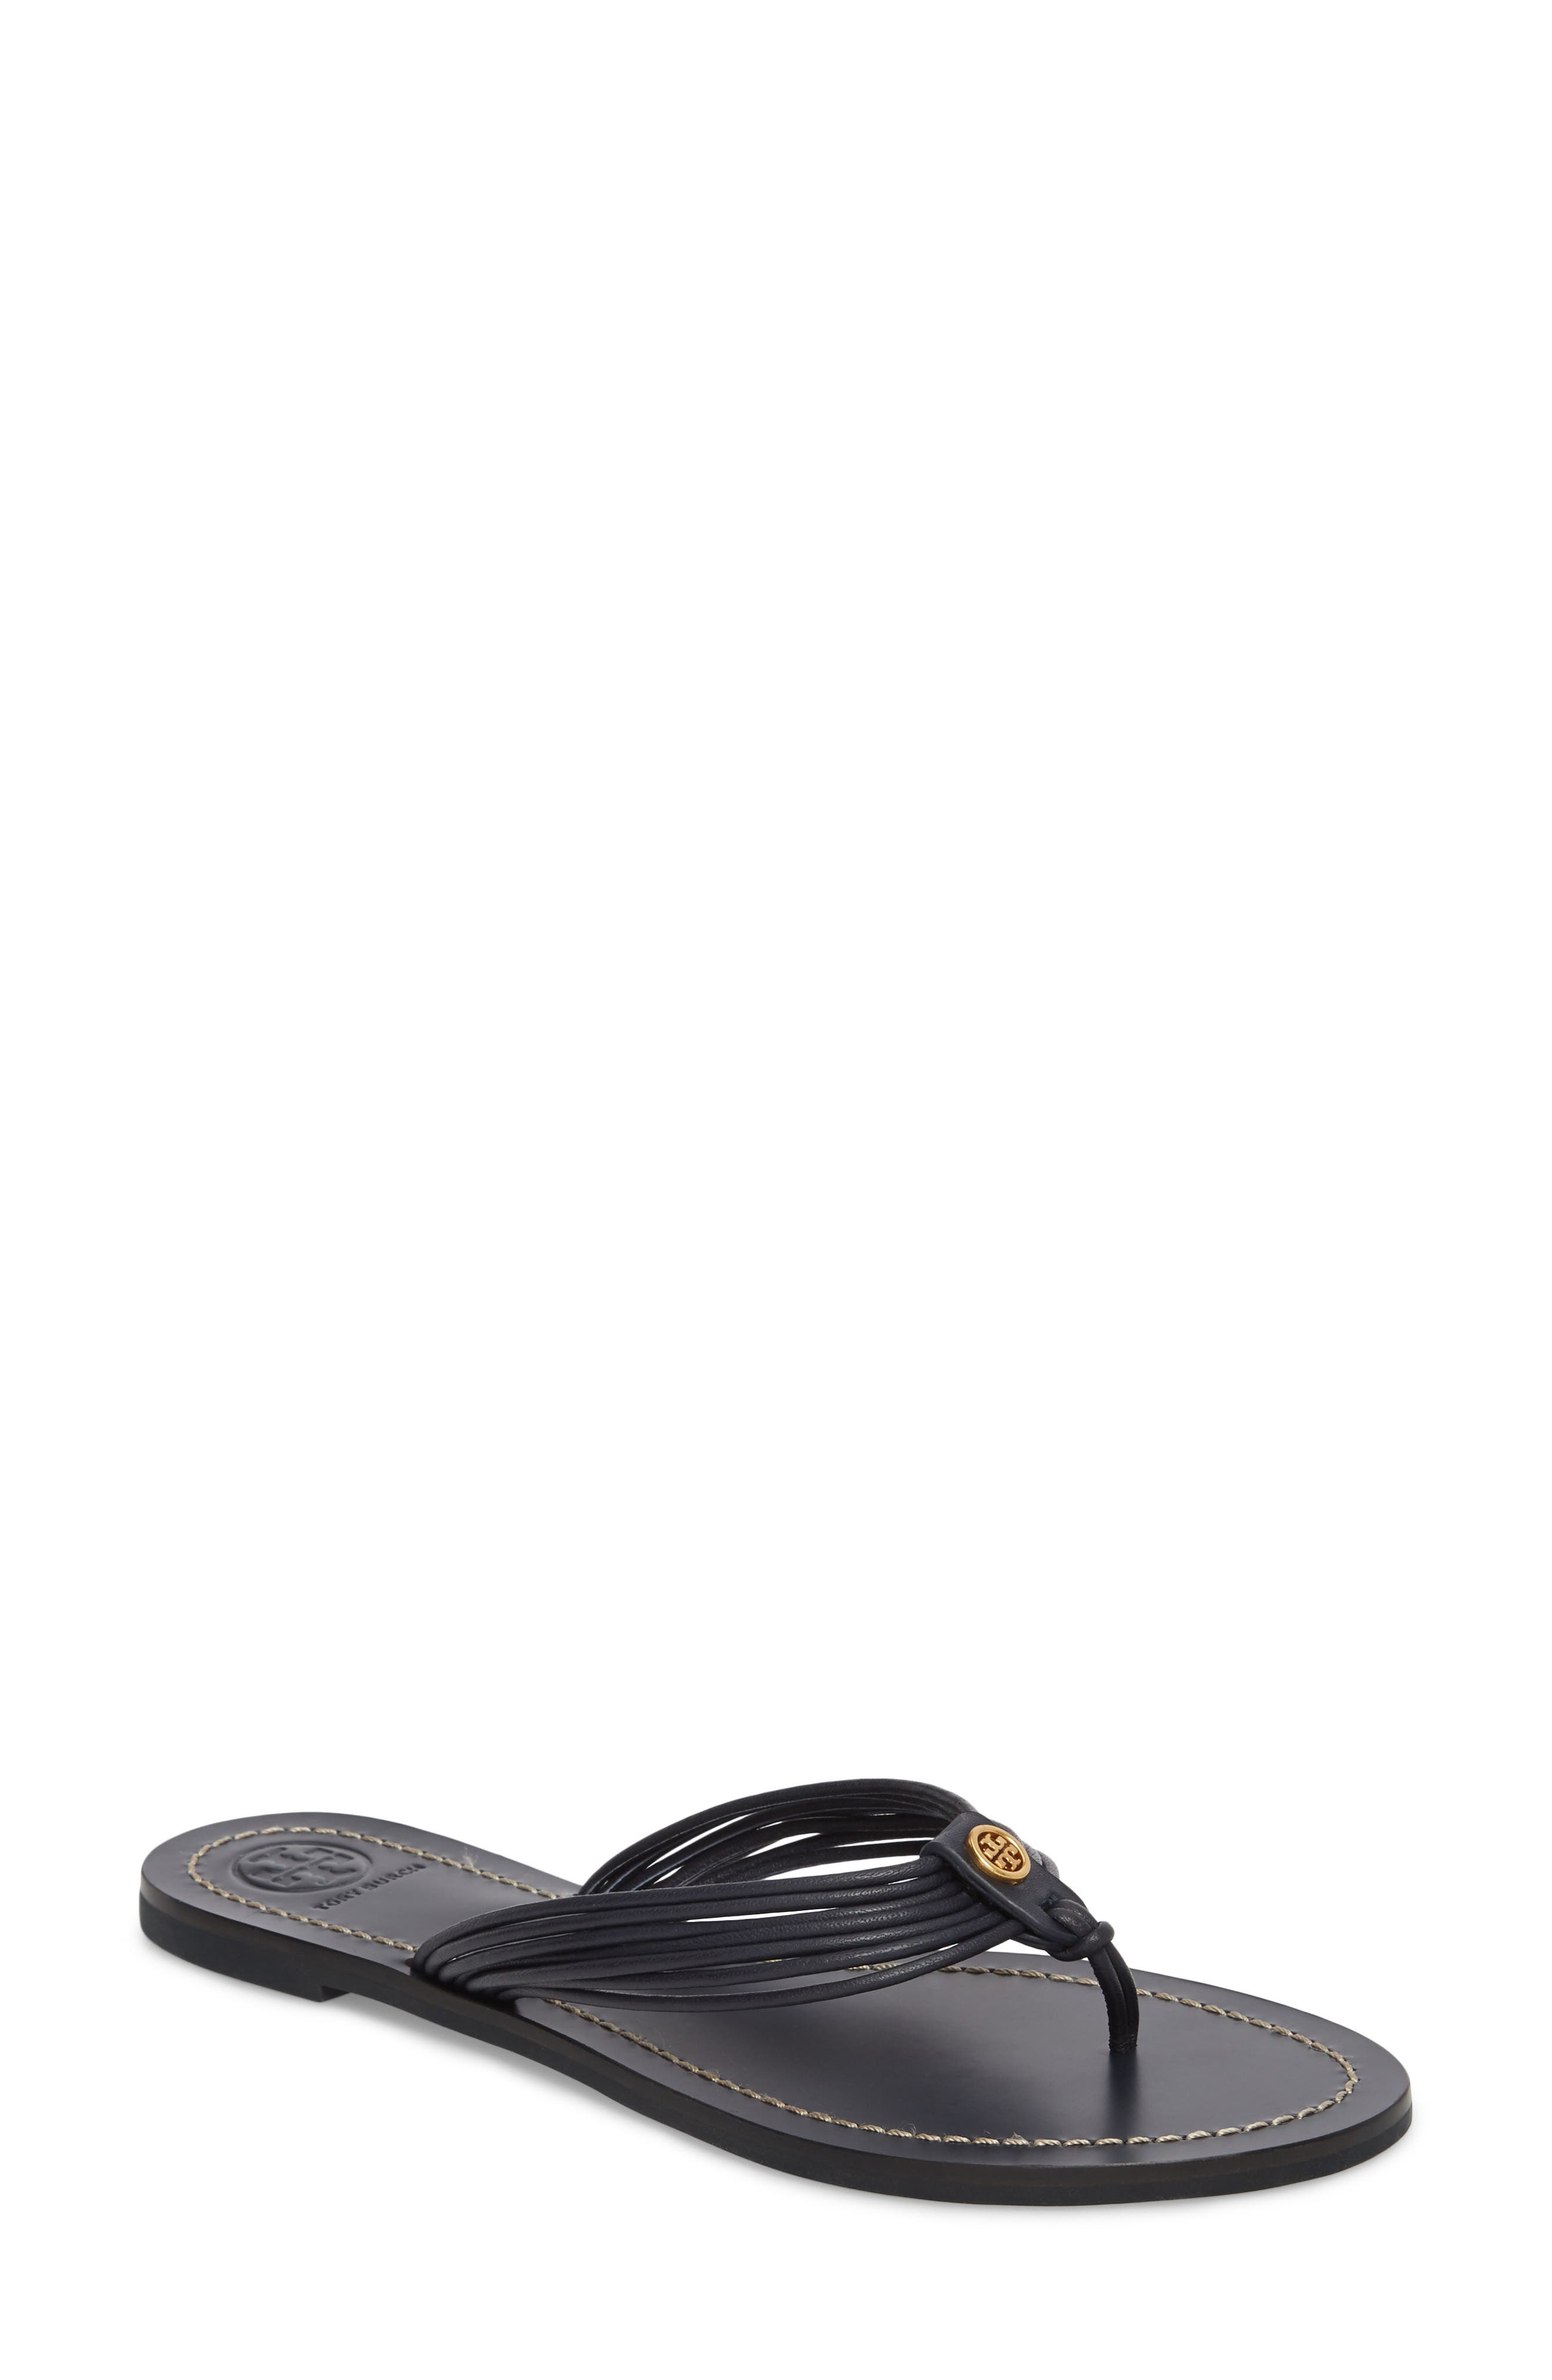 sneakernews for sale collections online SIENNA FLAT THONG SANDAL 158 White / White Multi / NATURAL VACHETTA PERFECT NAVY / PERFECT NAVY get to buy cheap online aIuepvQbew